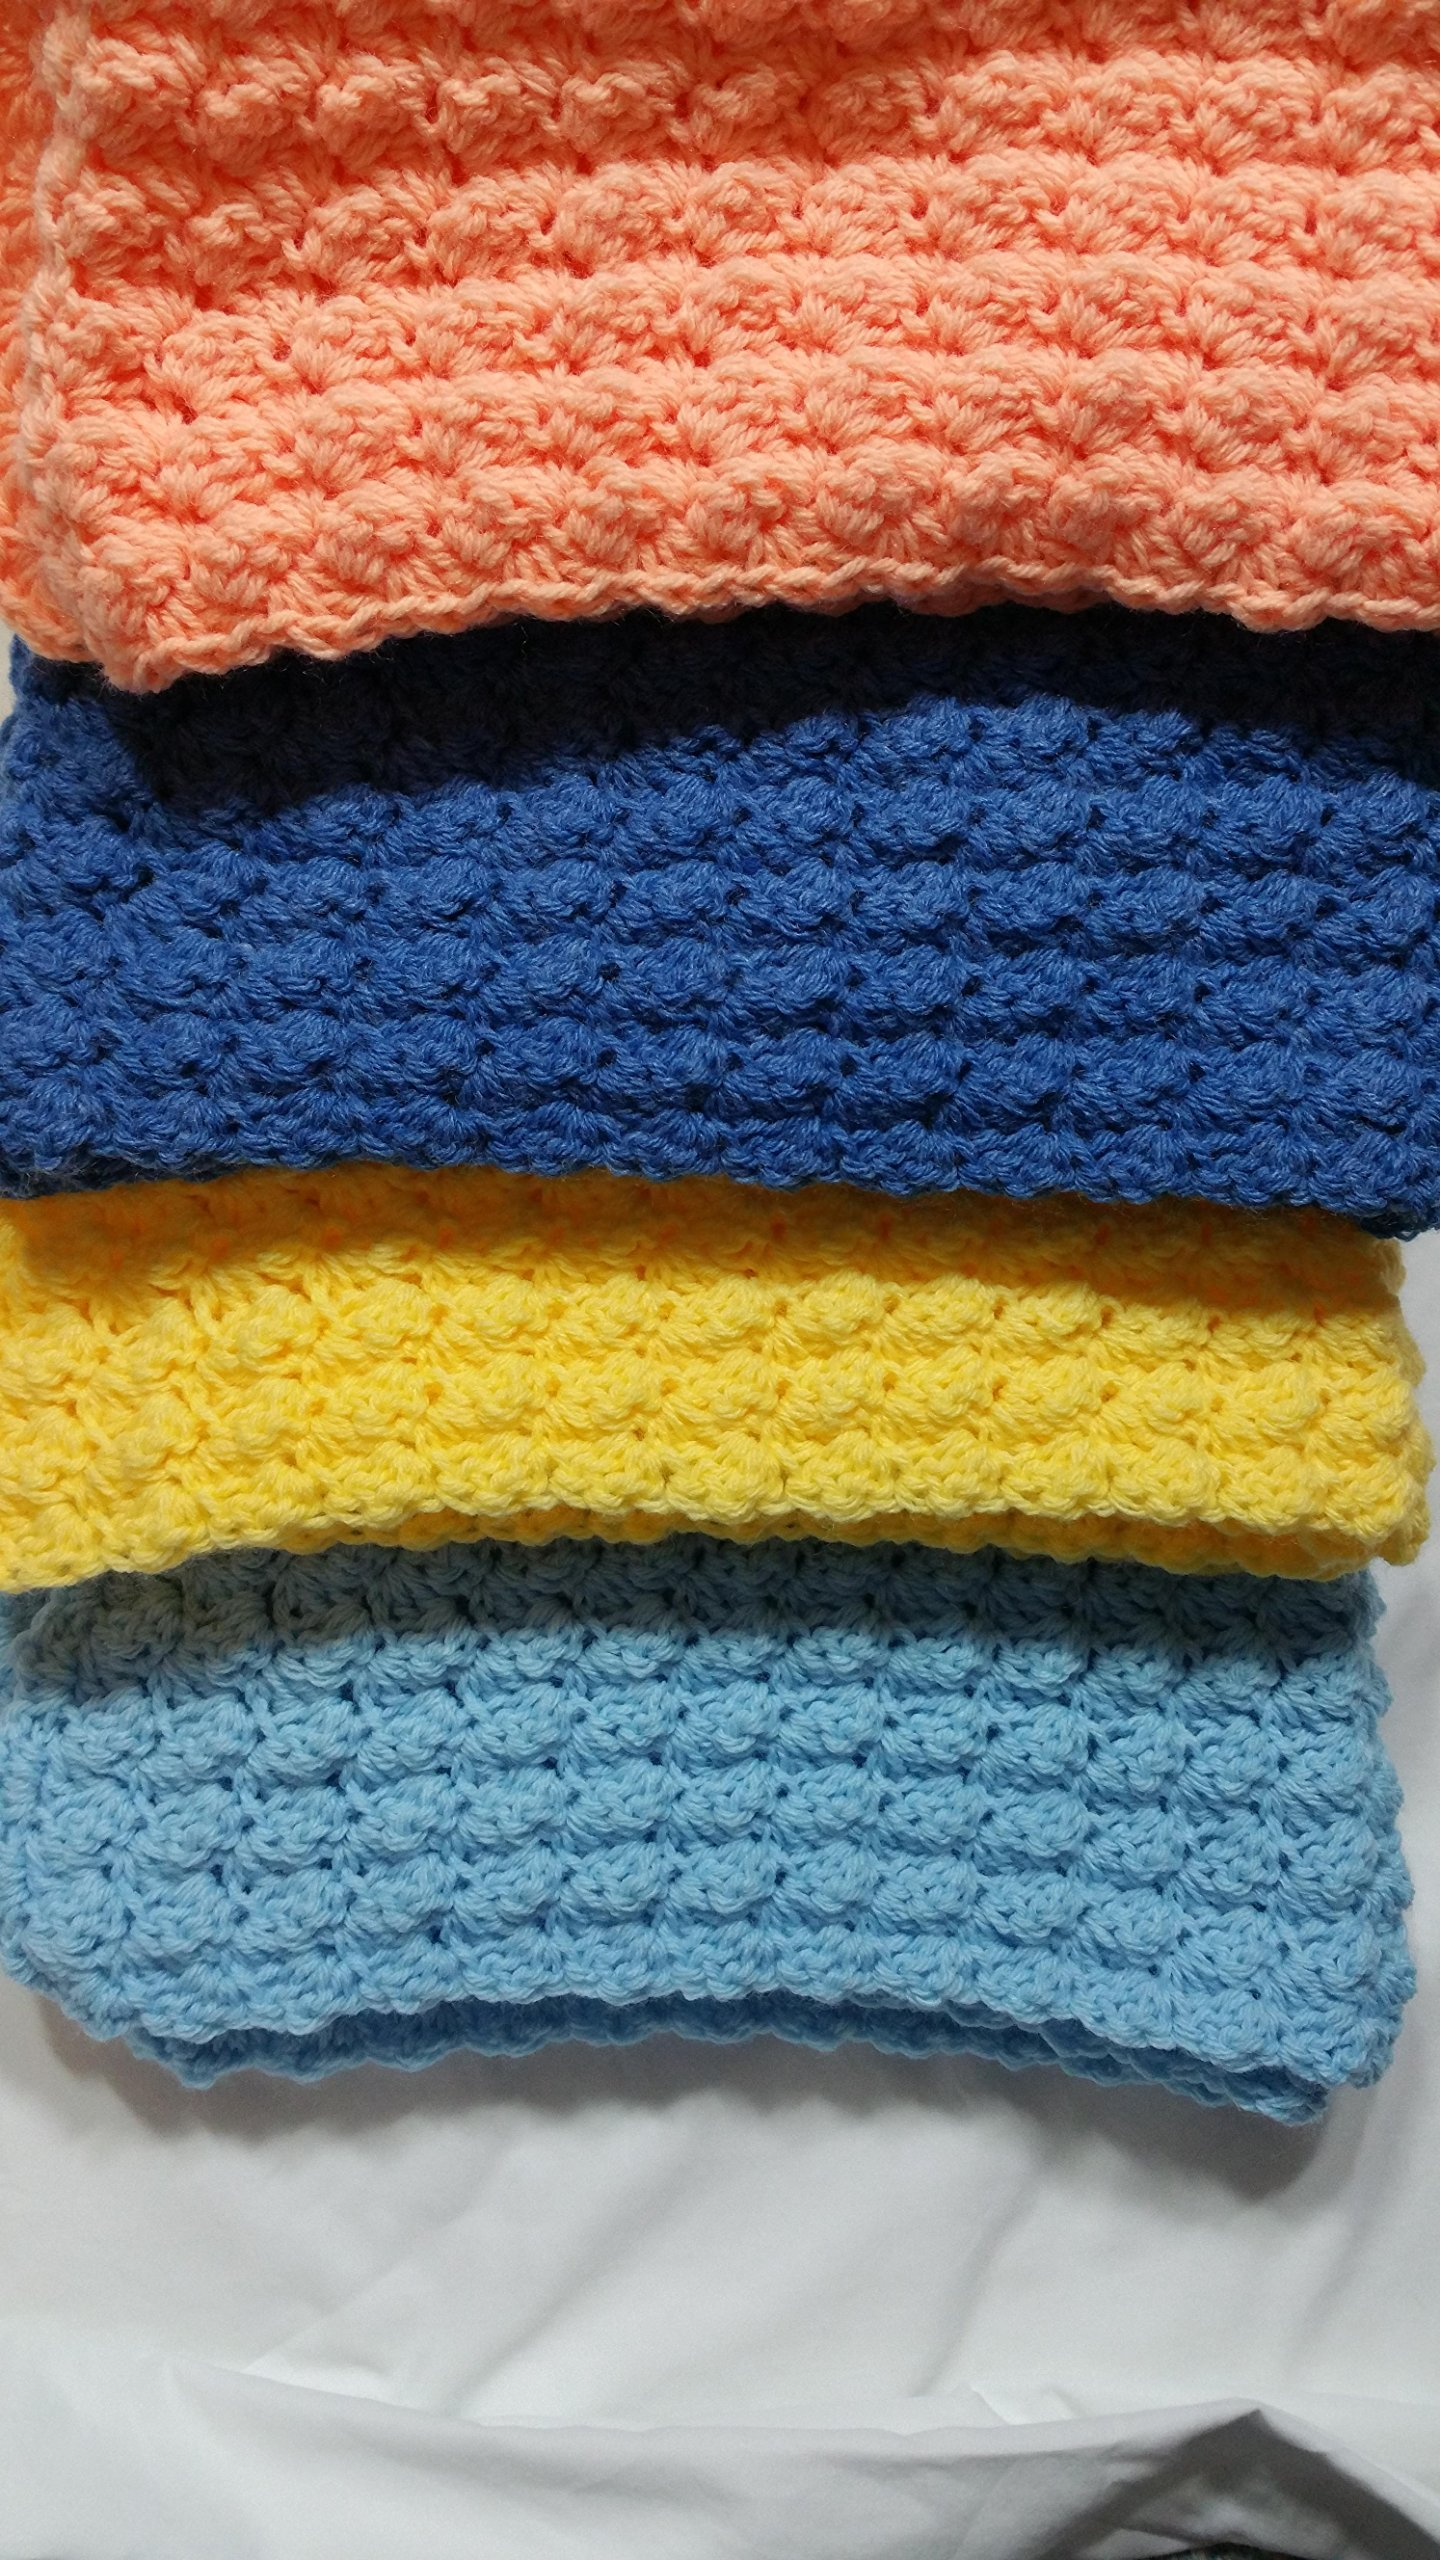 Hand Crafted Crochet Blanket (Riddle Stitch) by Stitches By Mama Rose